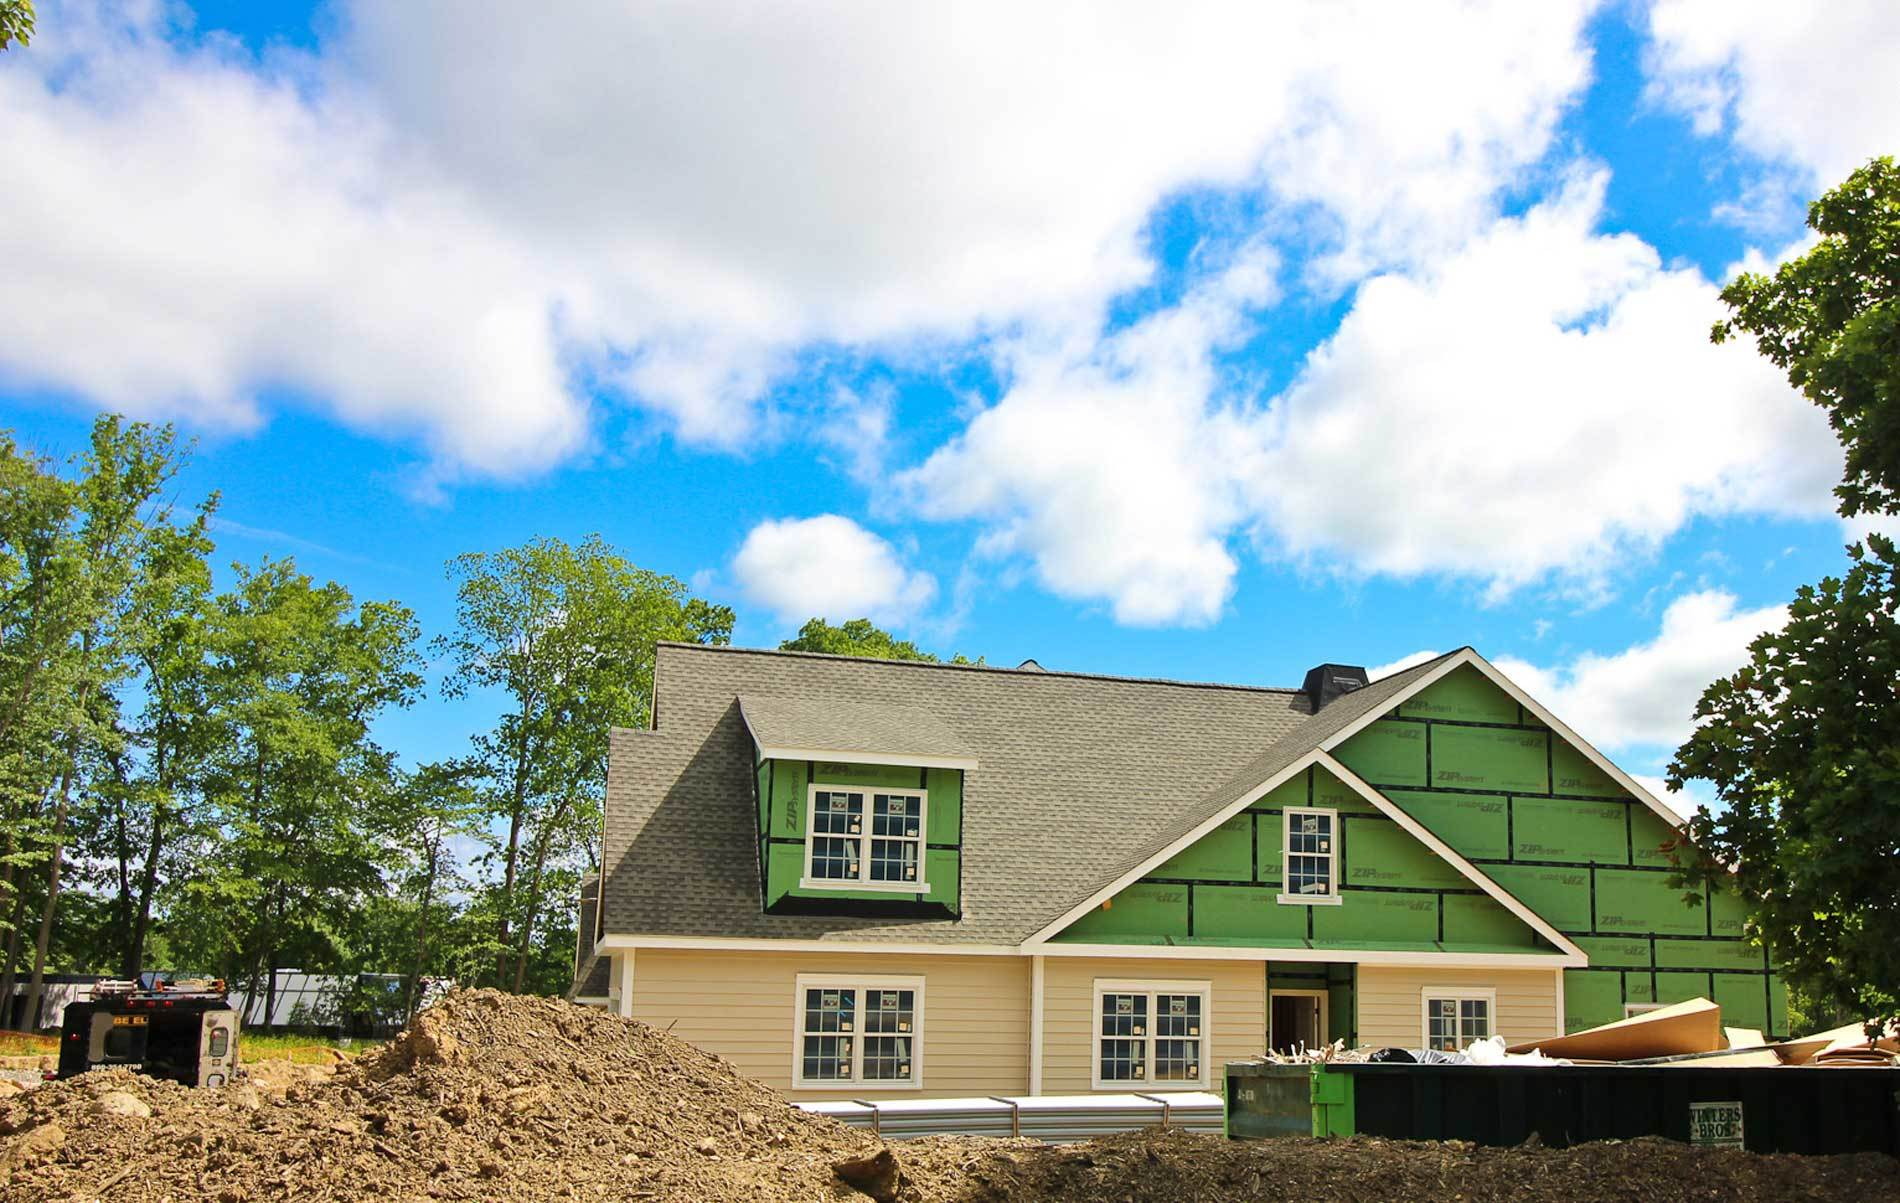 New Construction Homes for Sale in Wilton CT 06897